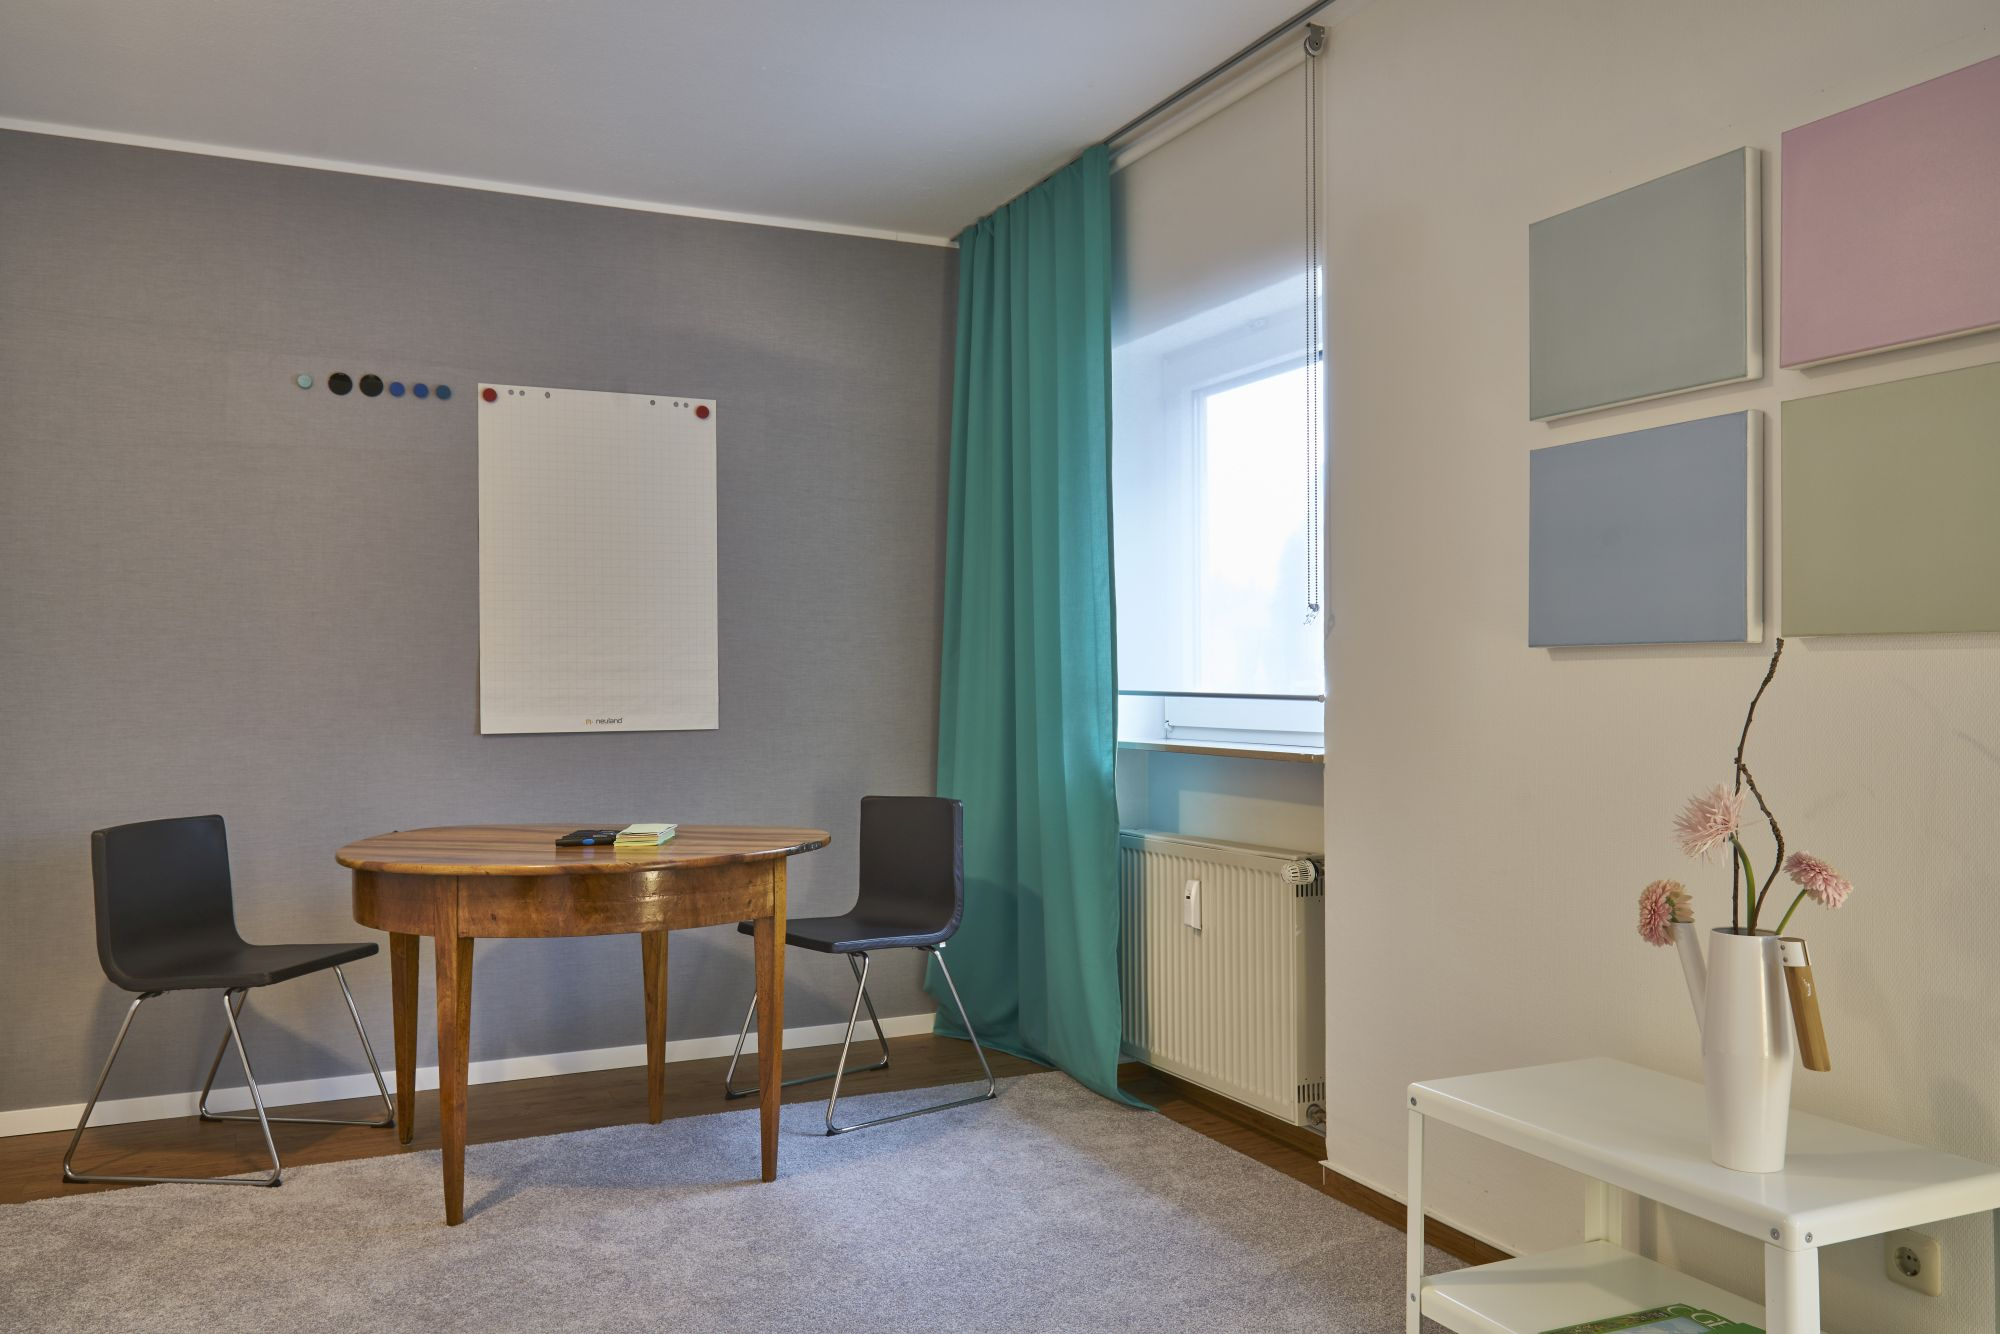 Transfer consulting rooms